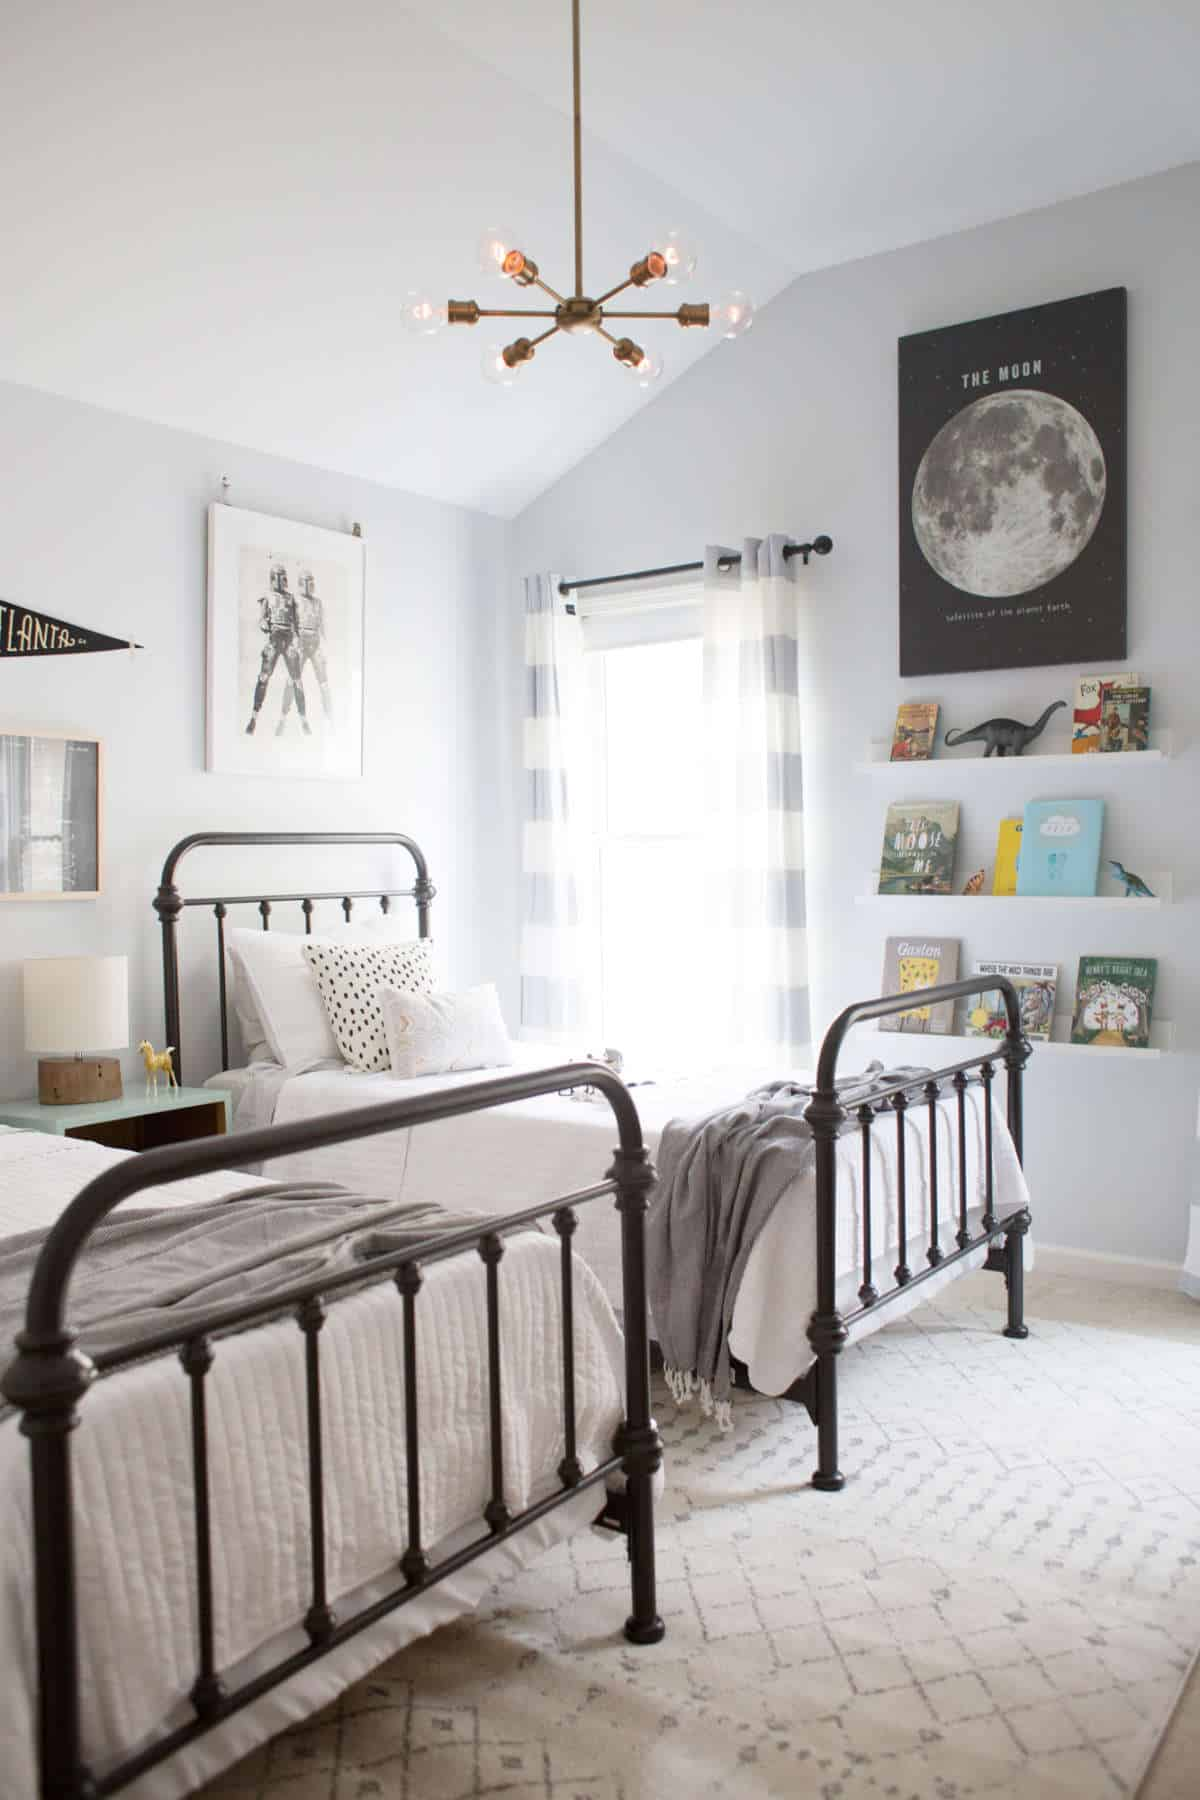 My Top 7 Favorite Big Boy Bedroom Inspirations